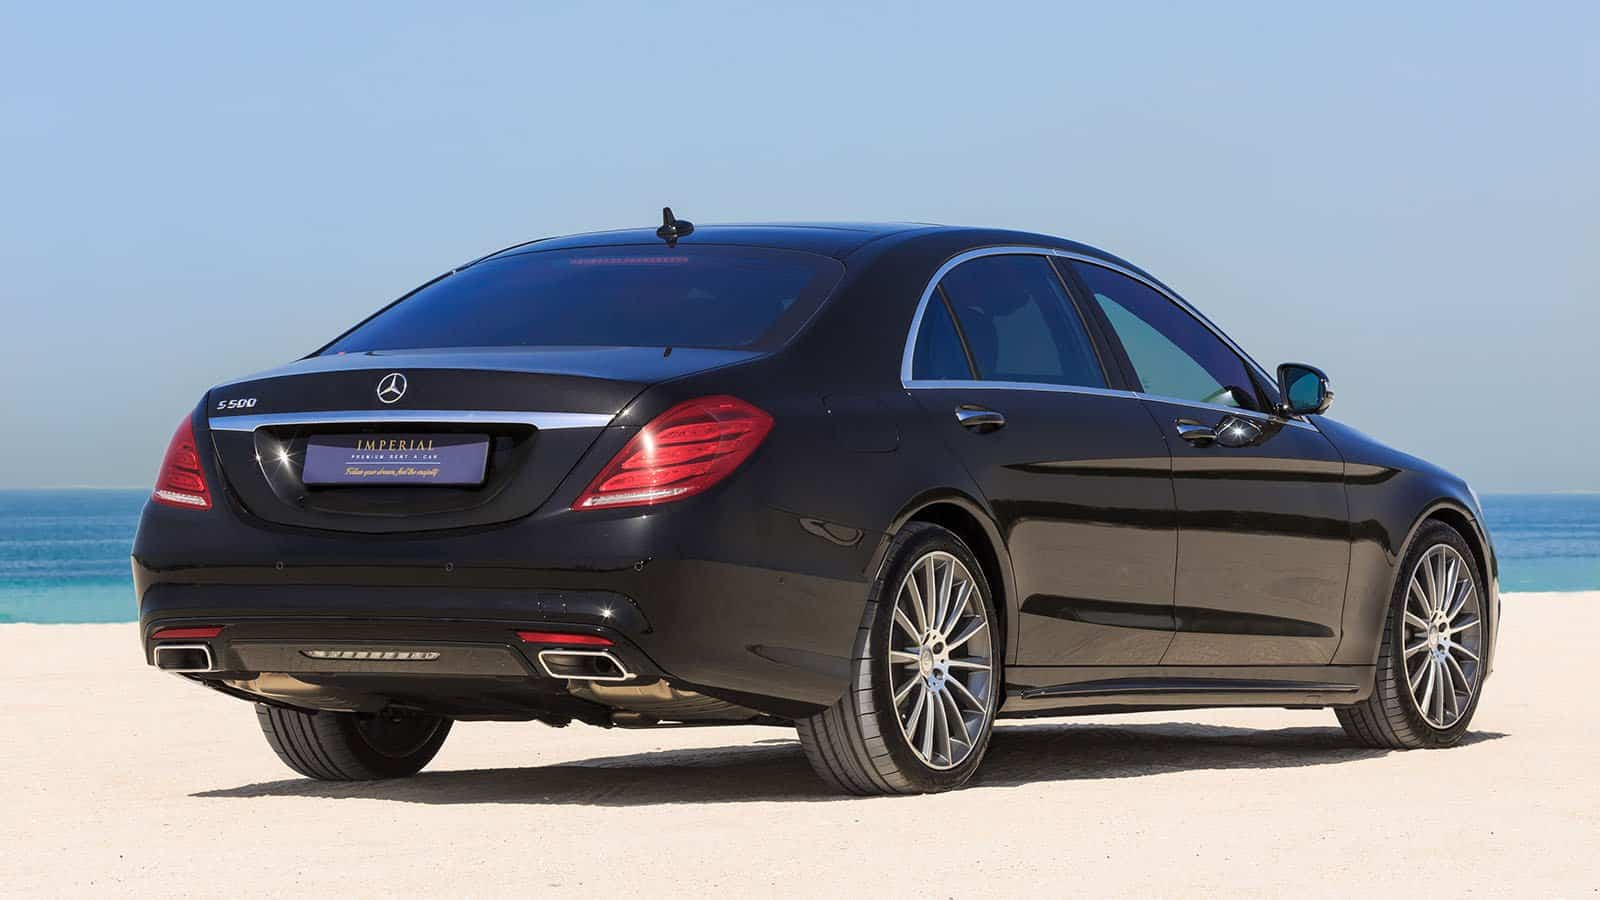 Rent A Car In Dubai >> Mercedes Benz S400 Rent Dubai | Imperial Premium Rent a Car